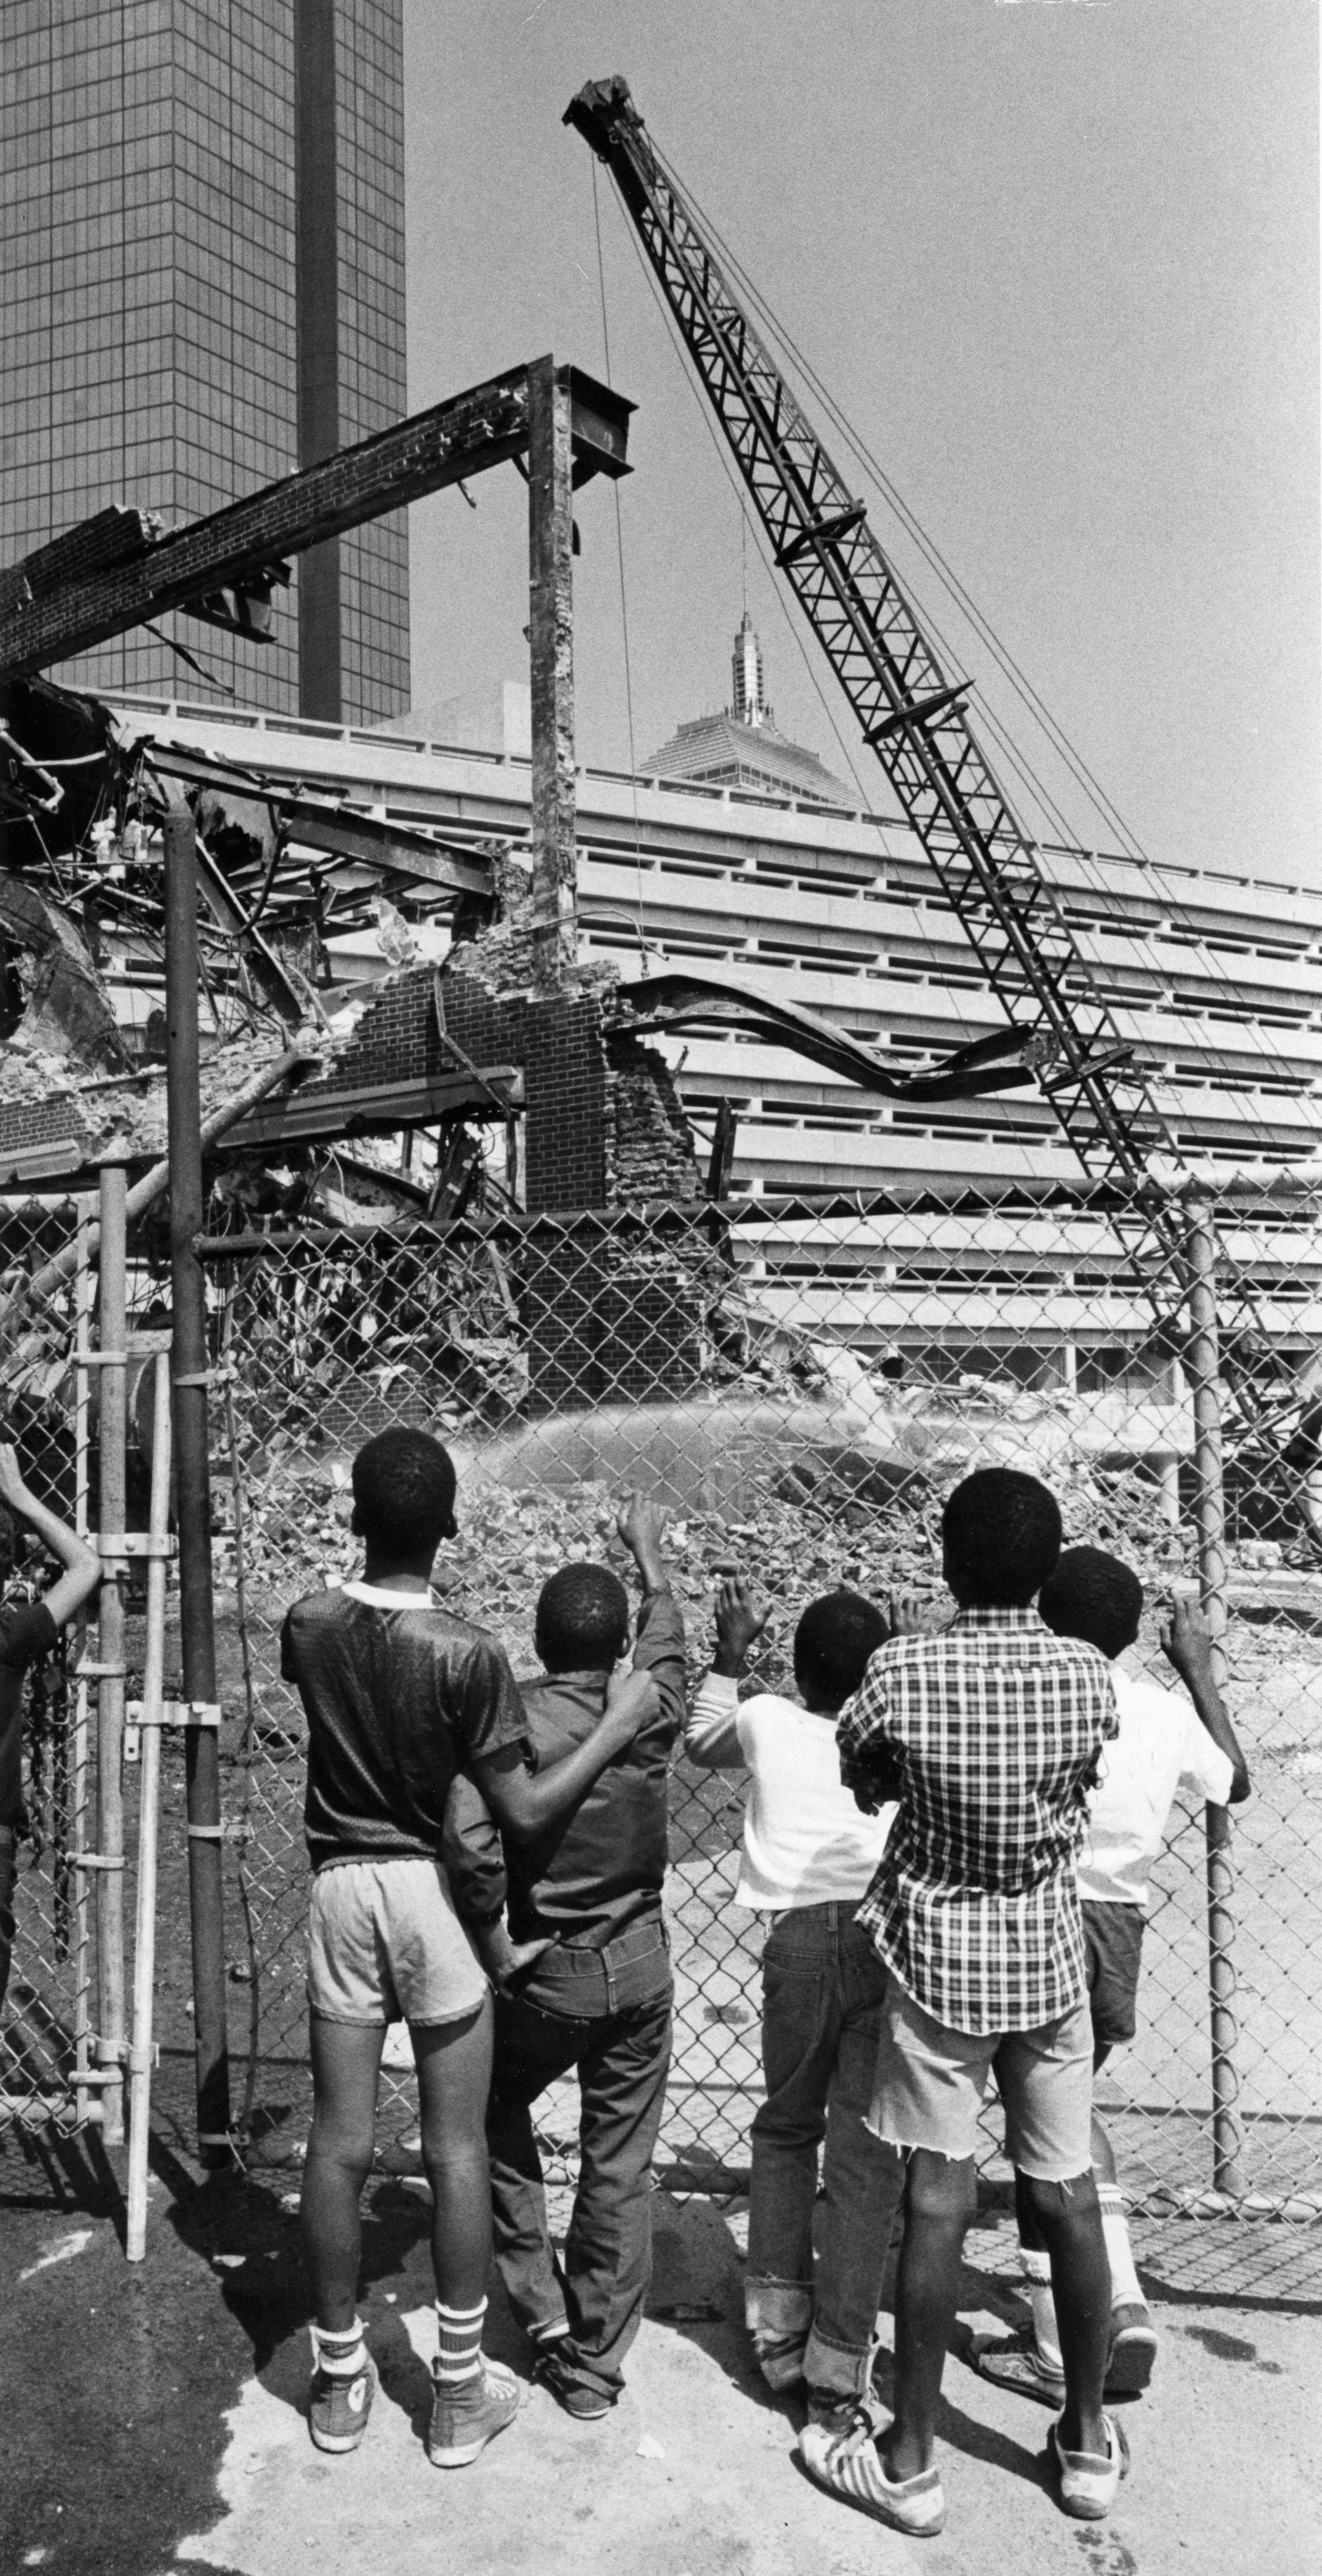 GLOBE STAFF/FILE  Demolition crews began work on taking down a later version of Back Bay station in 1981.